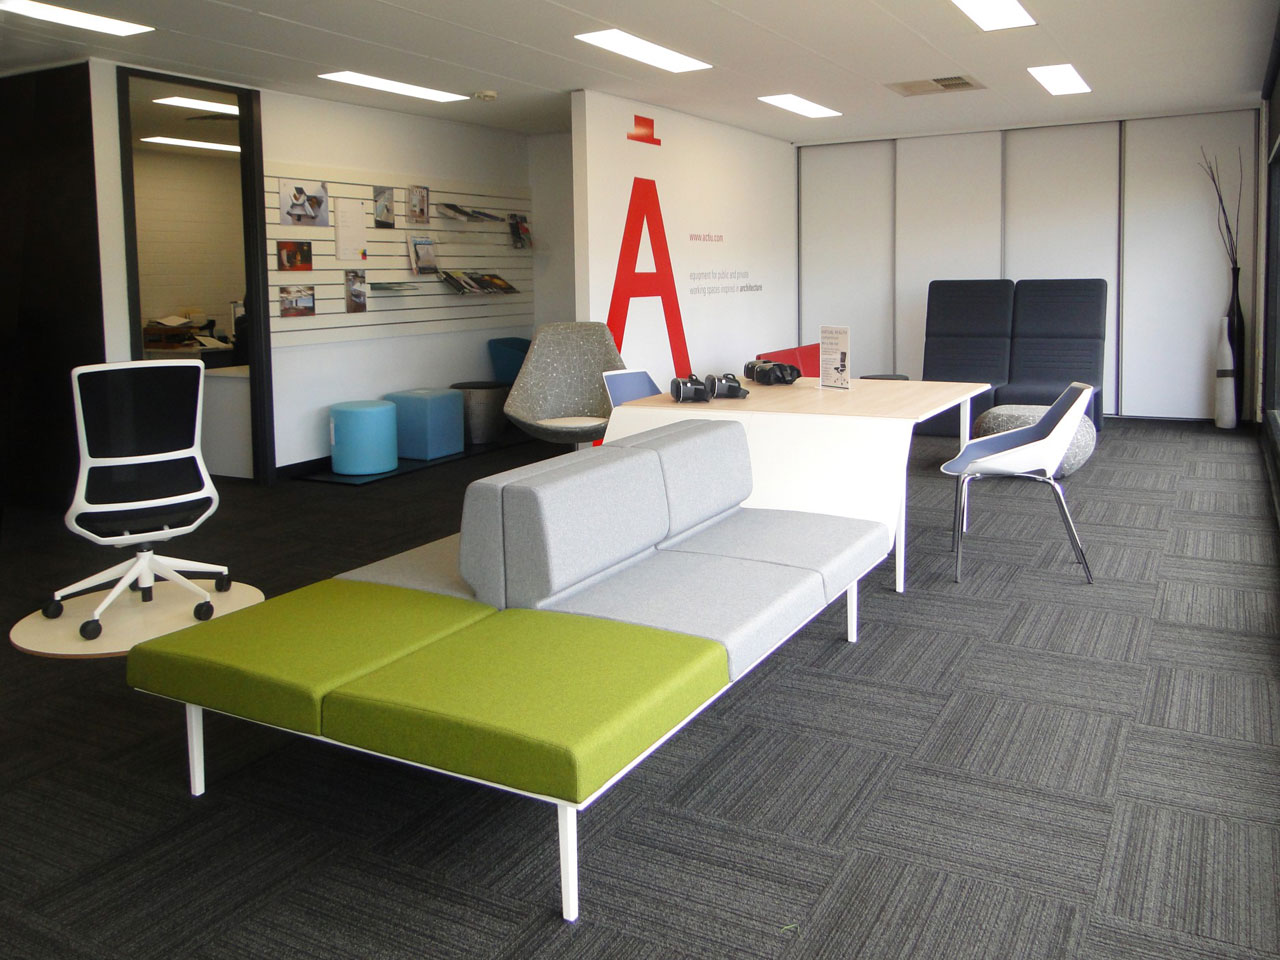 ... Resource Furniture, A New Partner Specialising In Offices, Libraries  And Education 8 ...